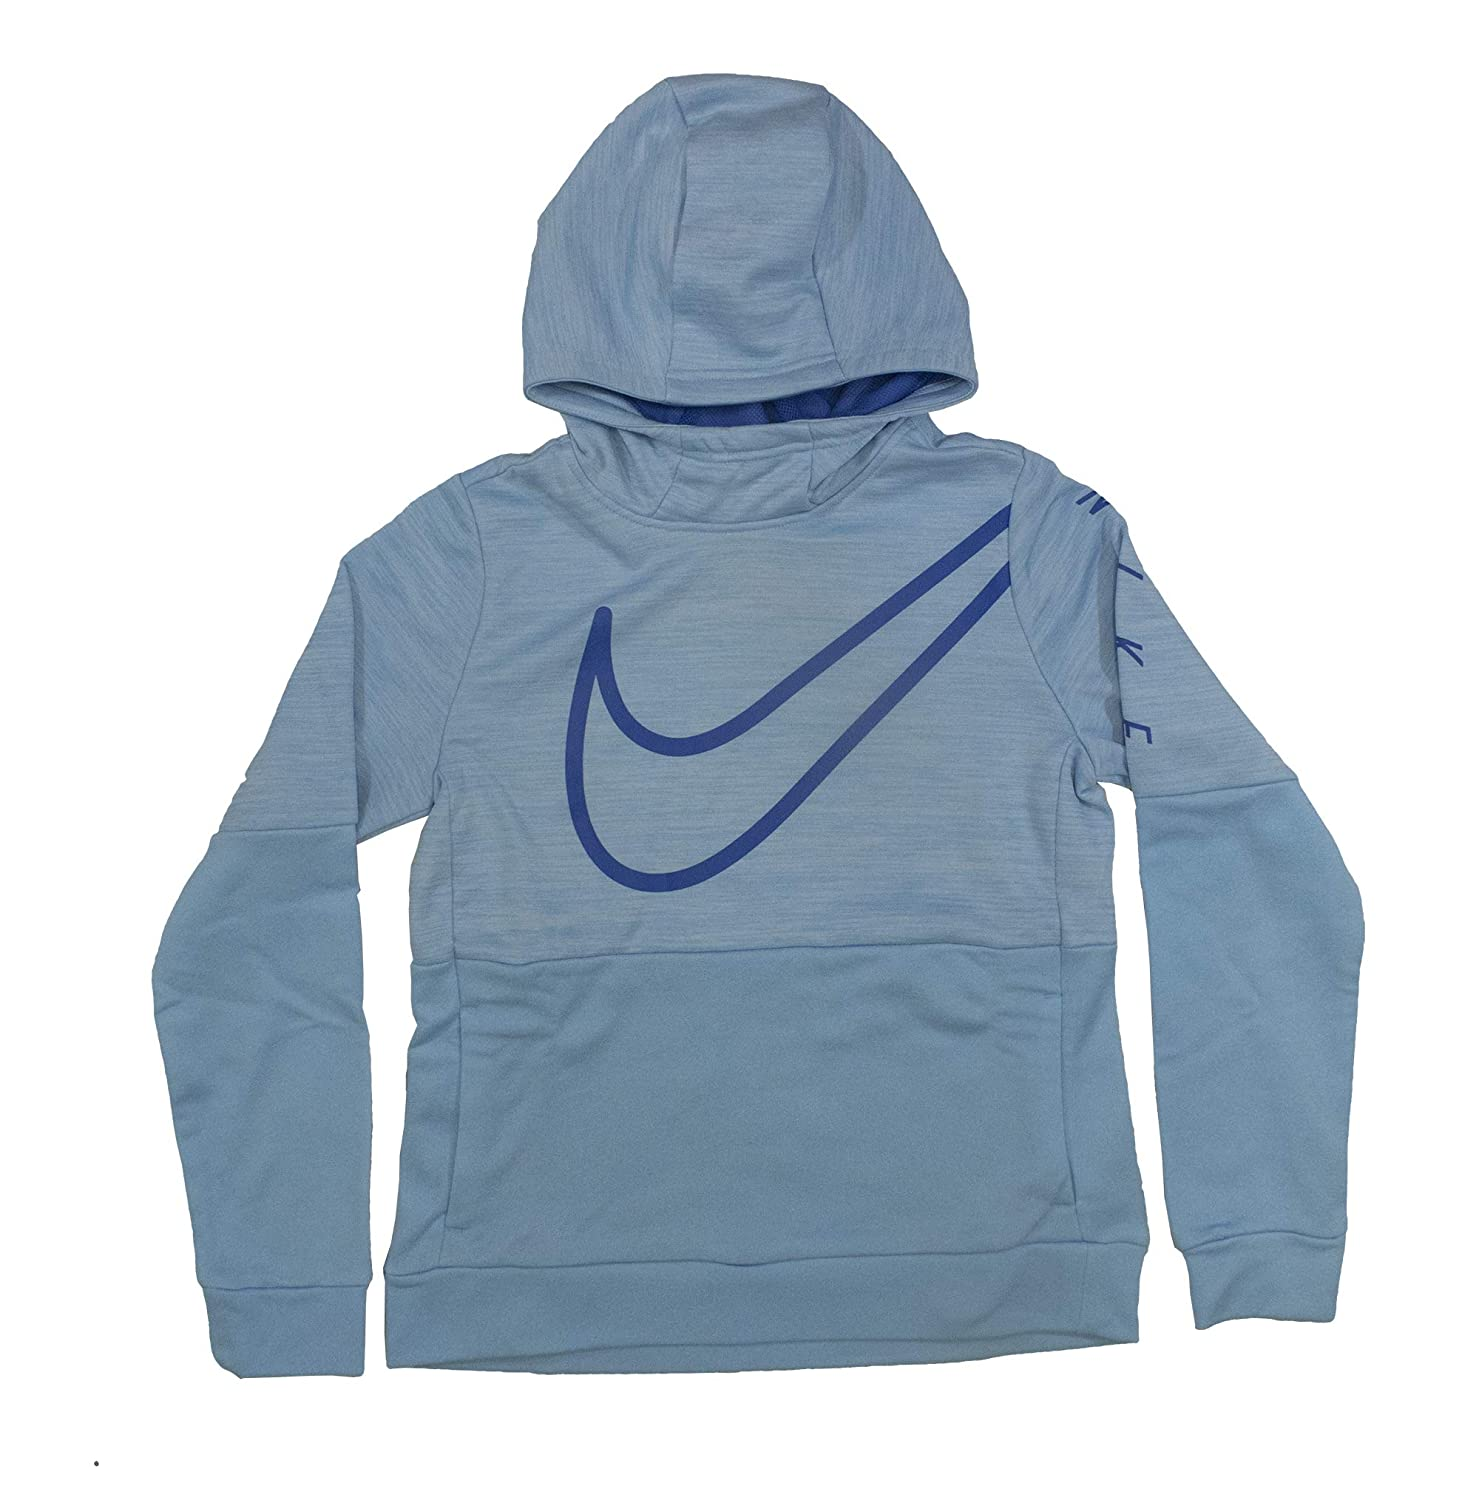 Nike Girl's Graphic Training Pullover Hoodie: Amazon.co.uk